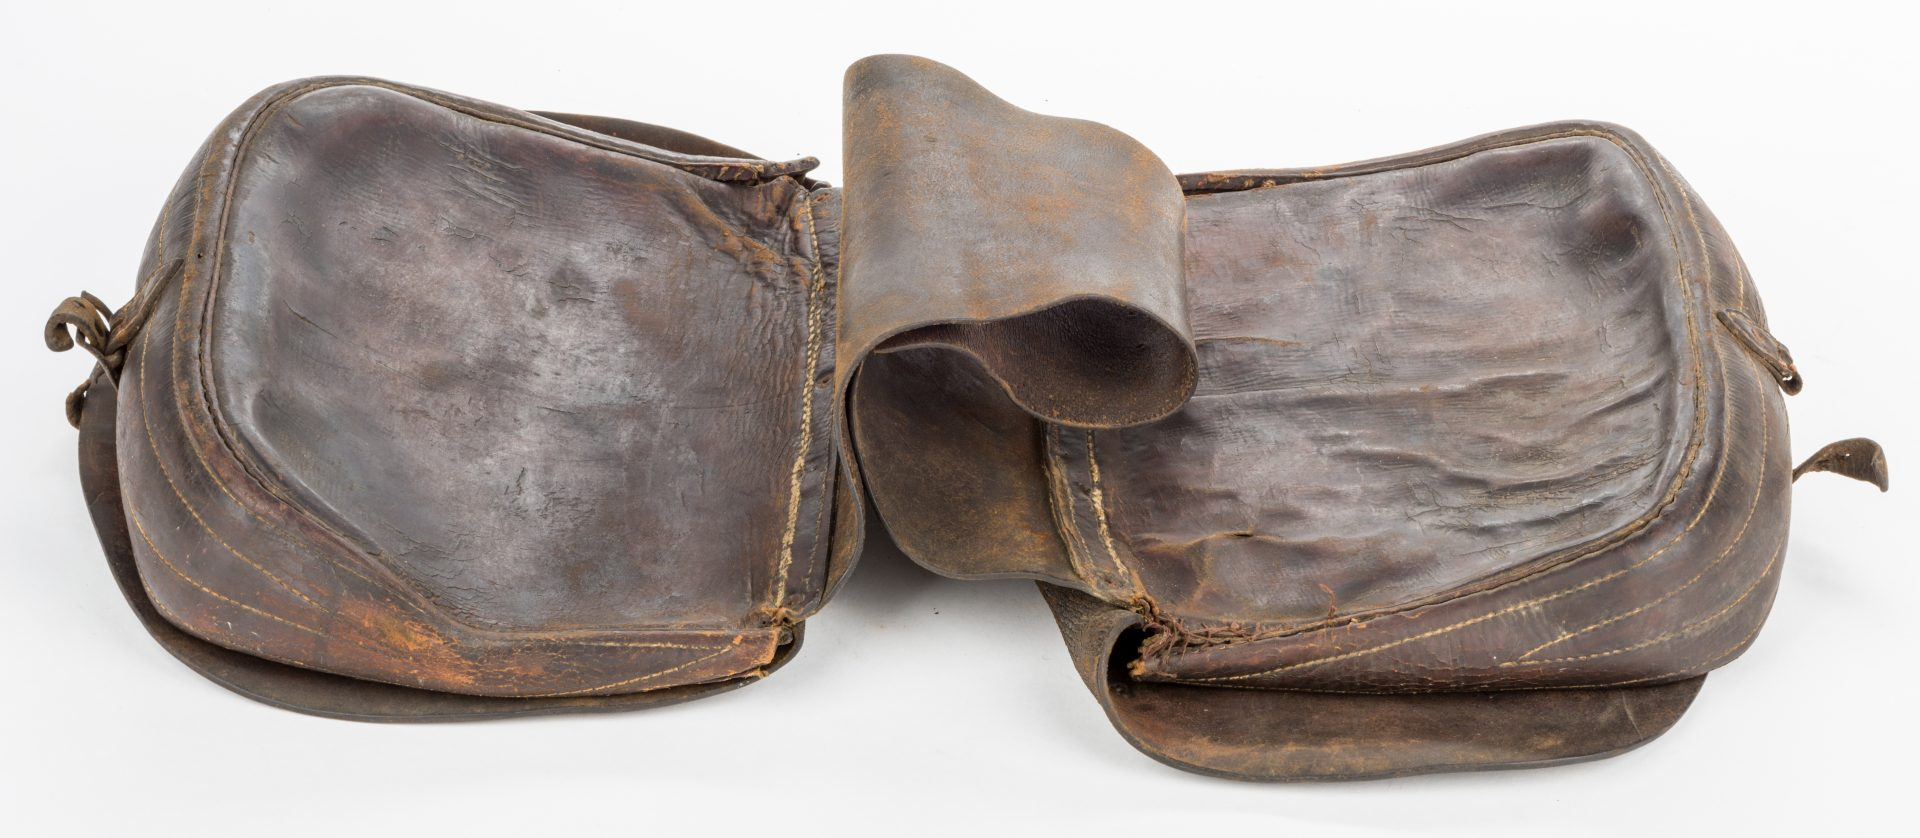 Lot 219: 2 TN Civil War Era Crow or Y-Strap Leather Saddlebags, Greene Co.